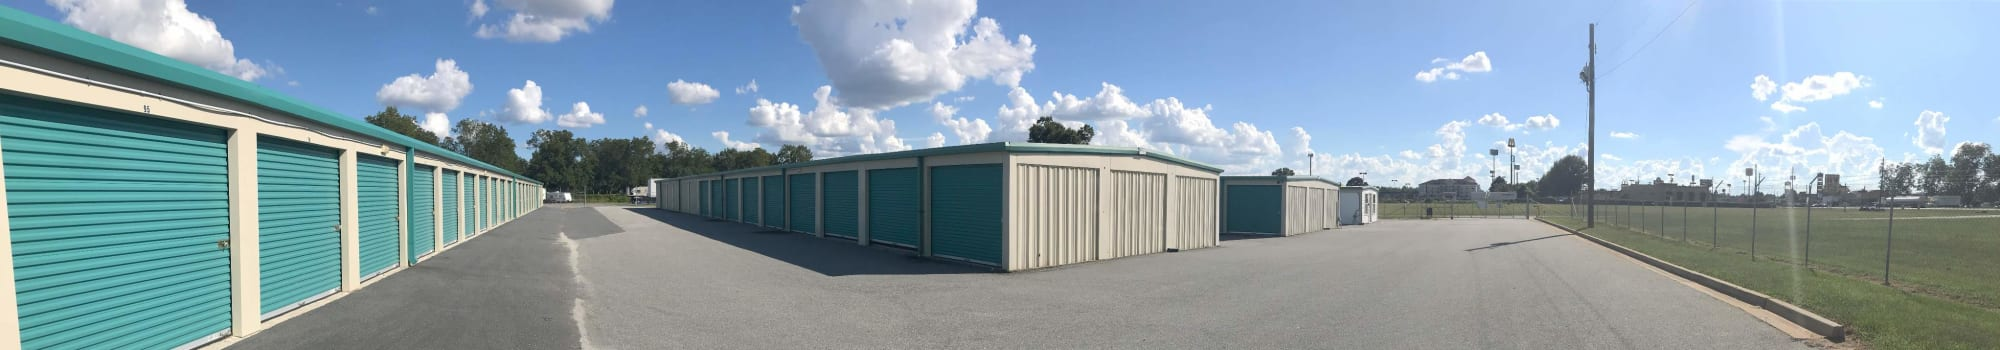 Self storage units for rent in Byron, GA